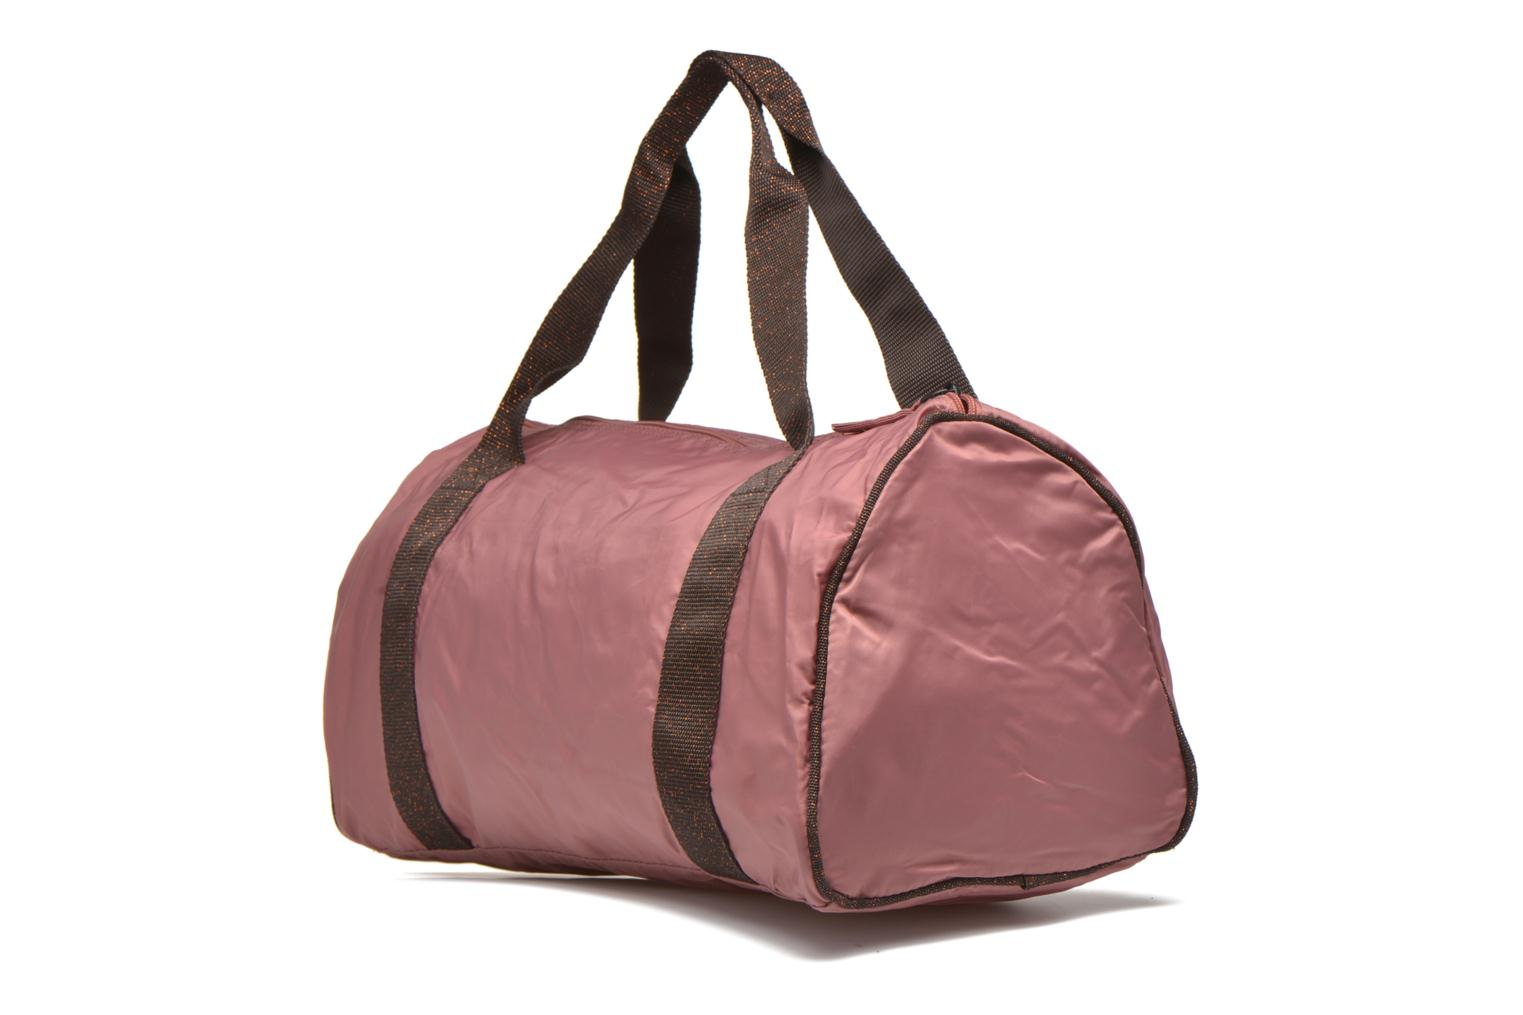 Color Bag Vieux rose A6